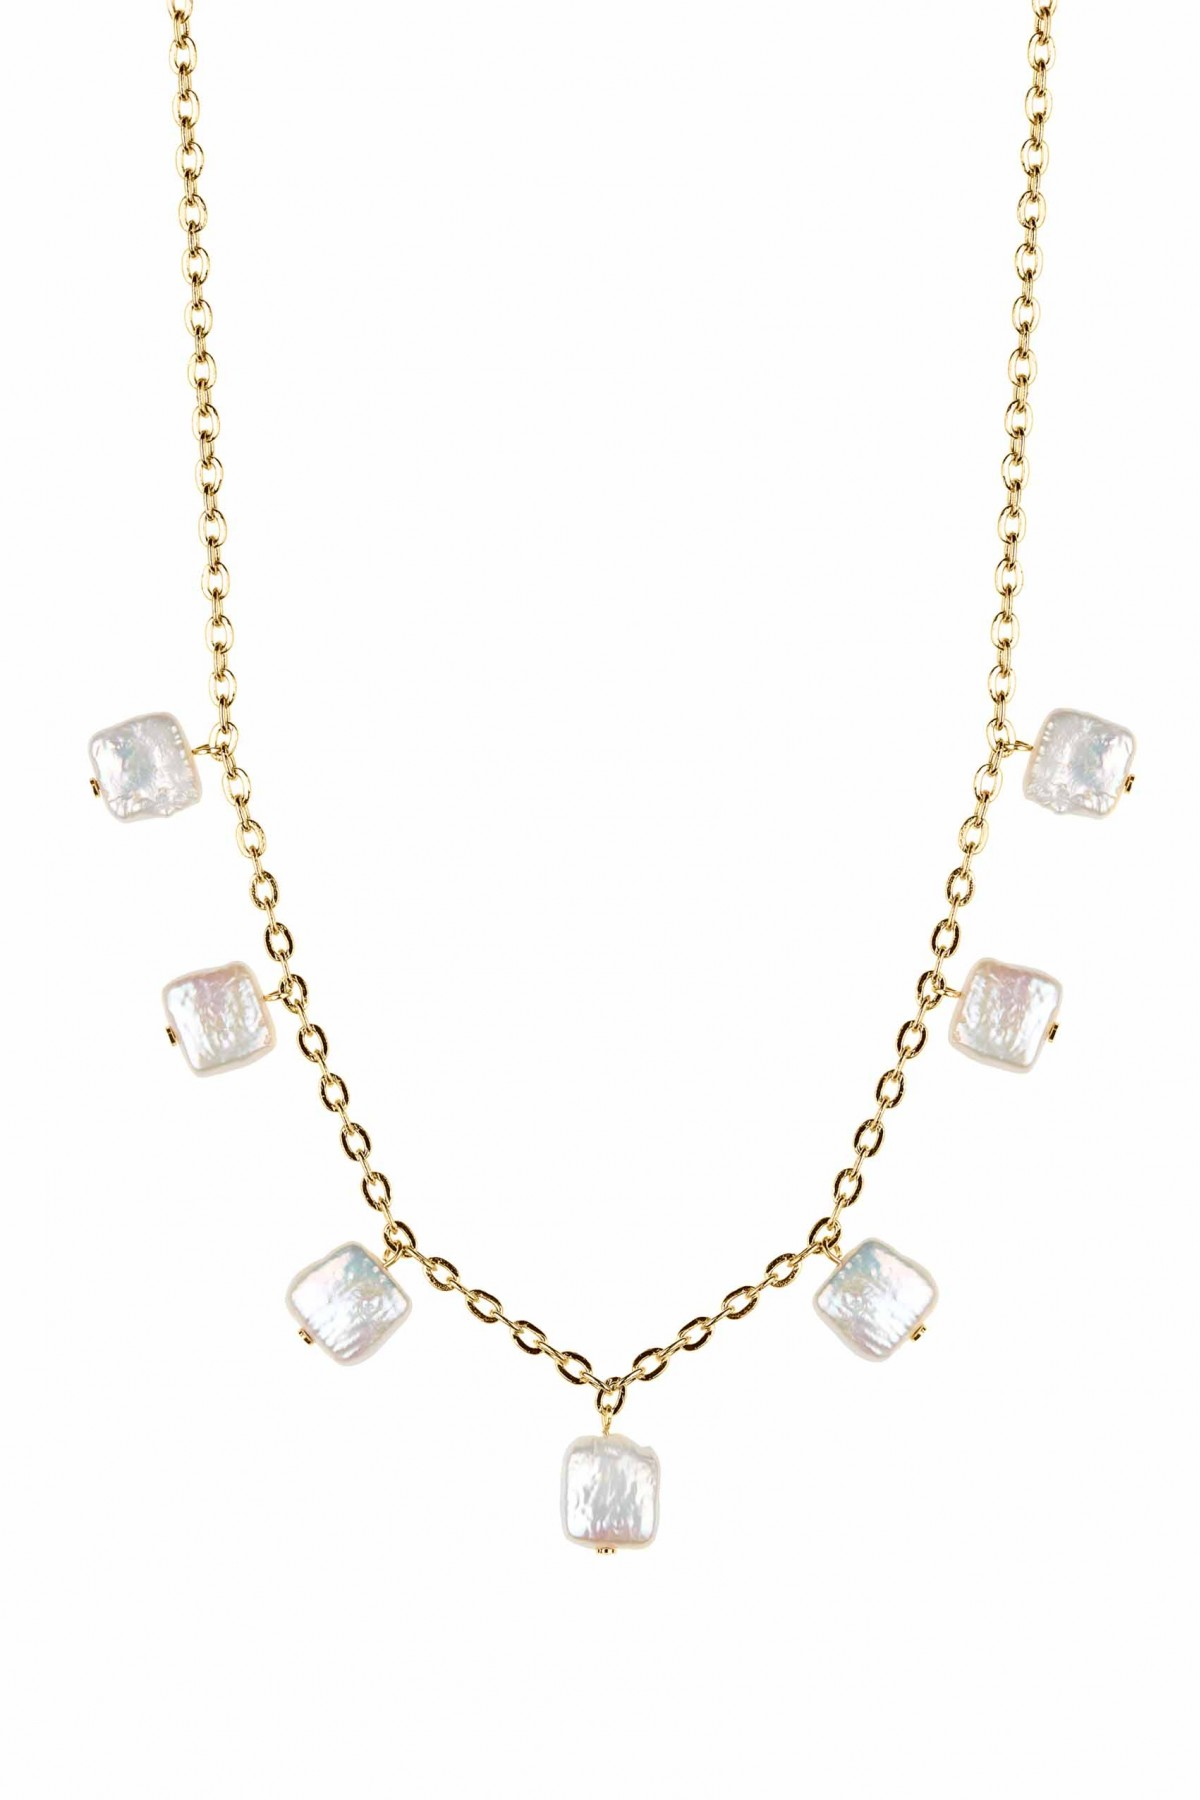 Matisse Pearls XL Necklace